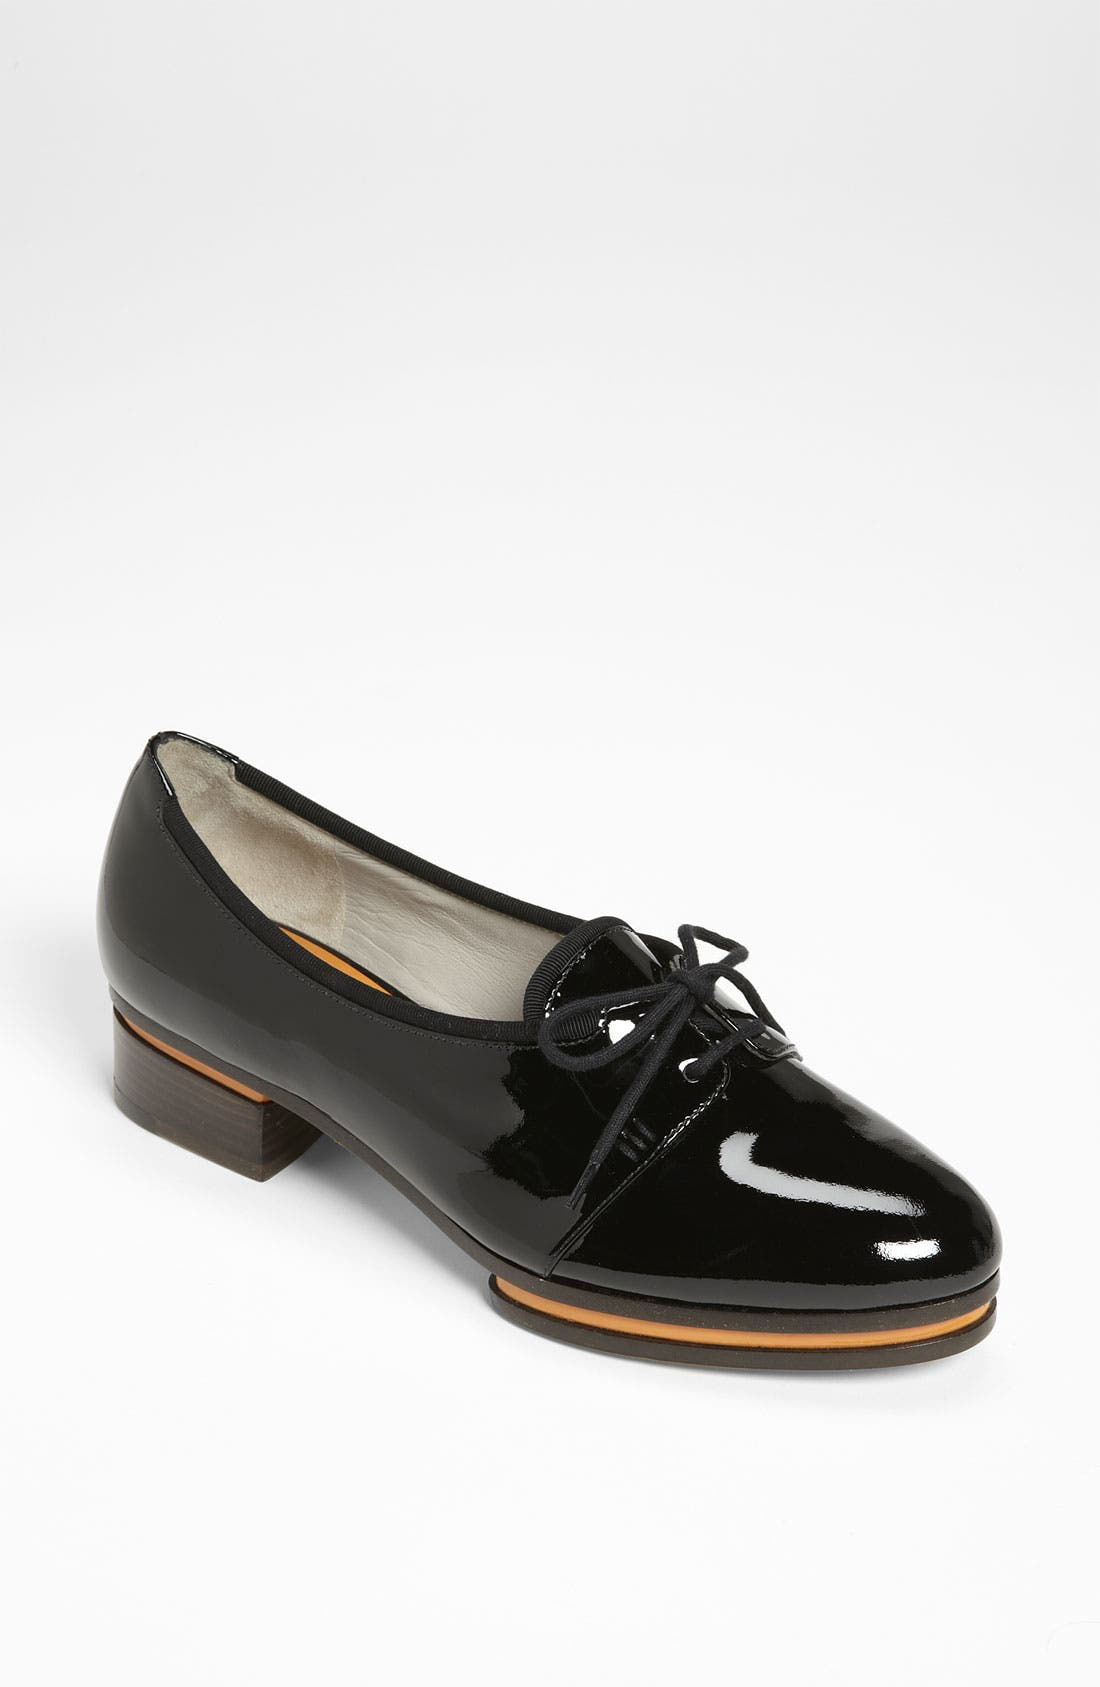 Main Image - Jason Wu 'Terese' Oxford